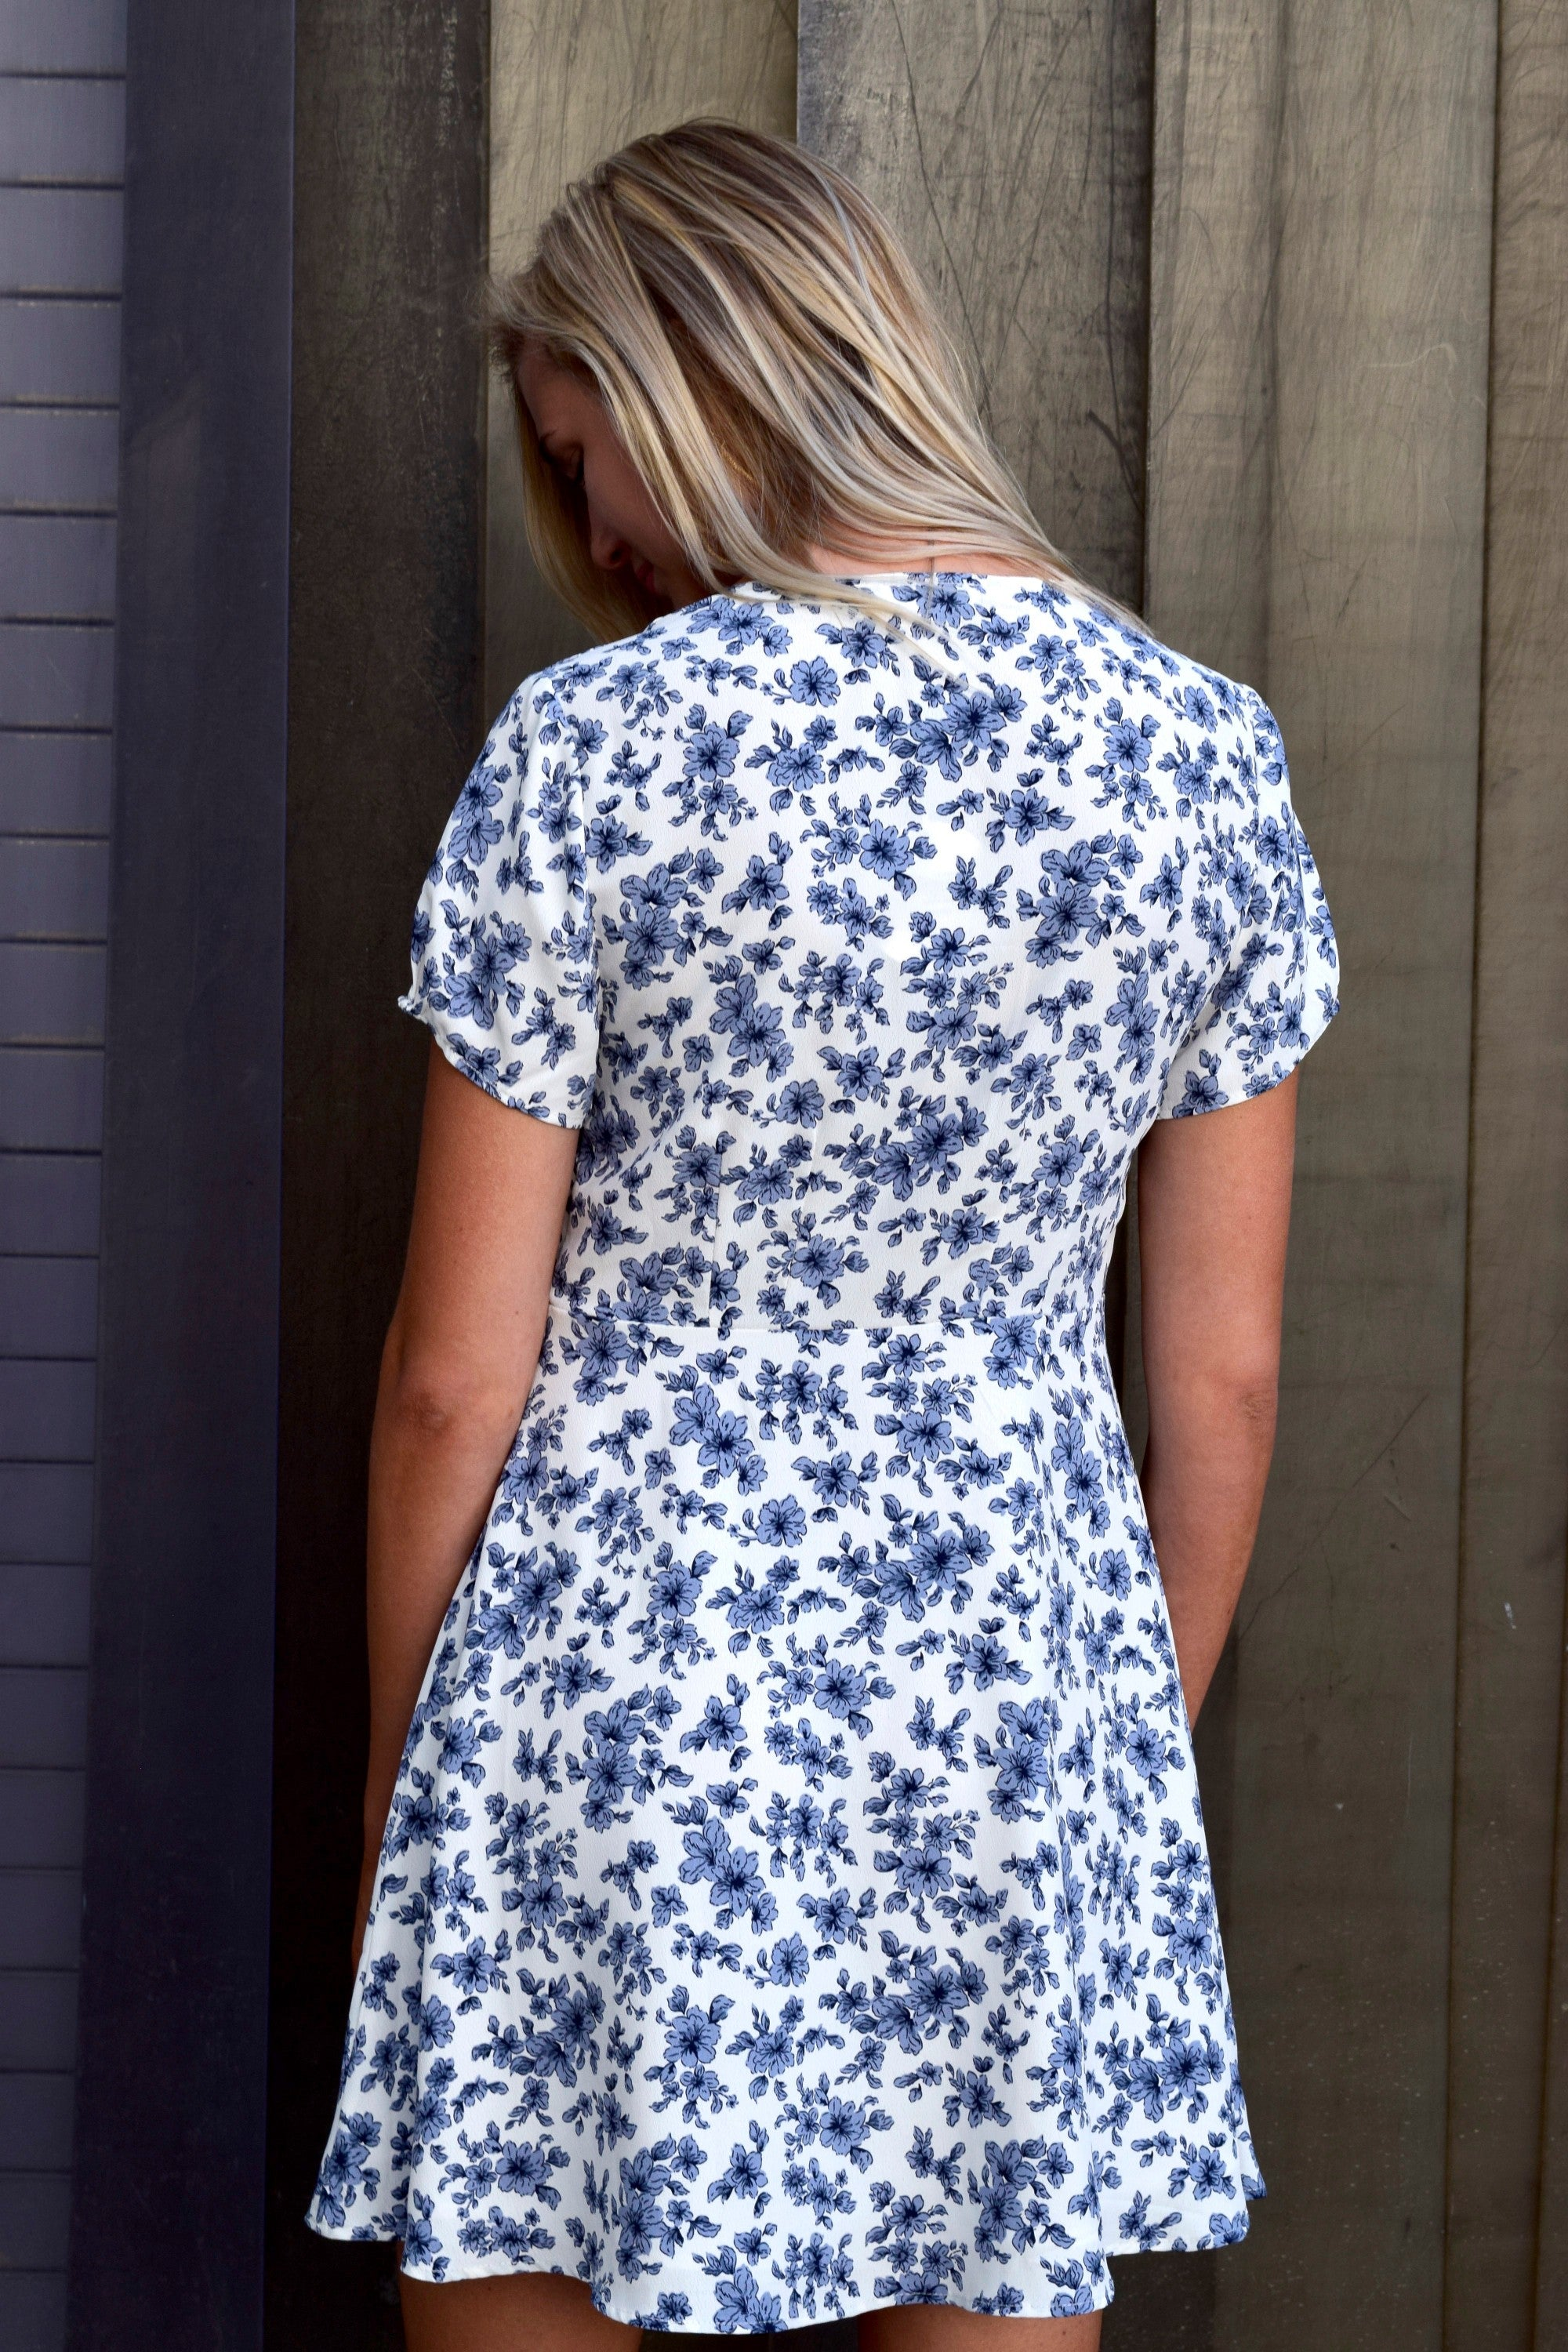 SHE'S A DOLL WHITE AND BLUE FLORAL DRESS